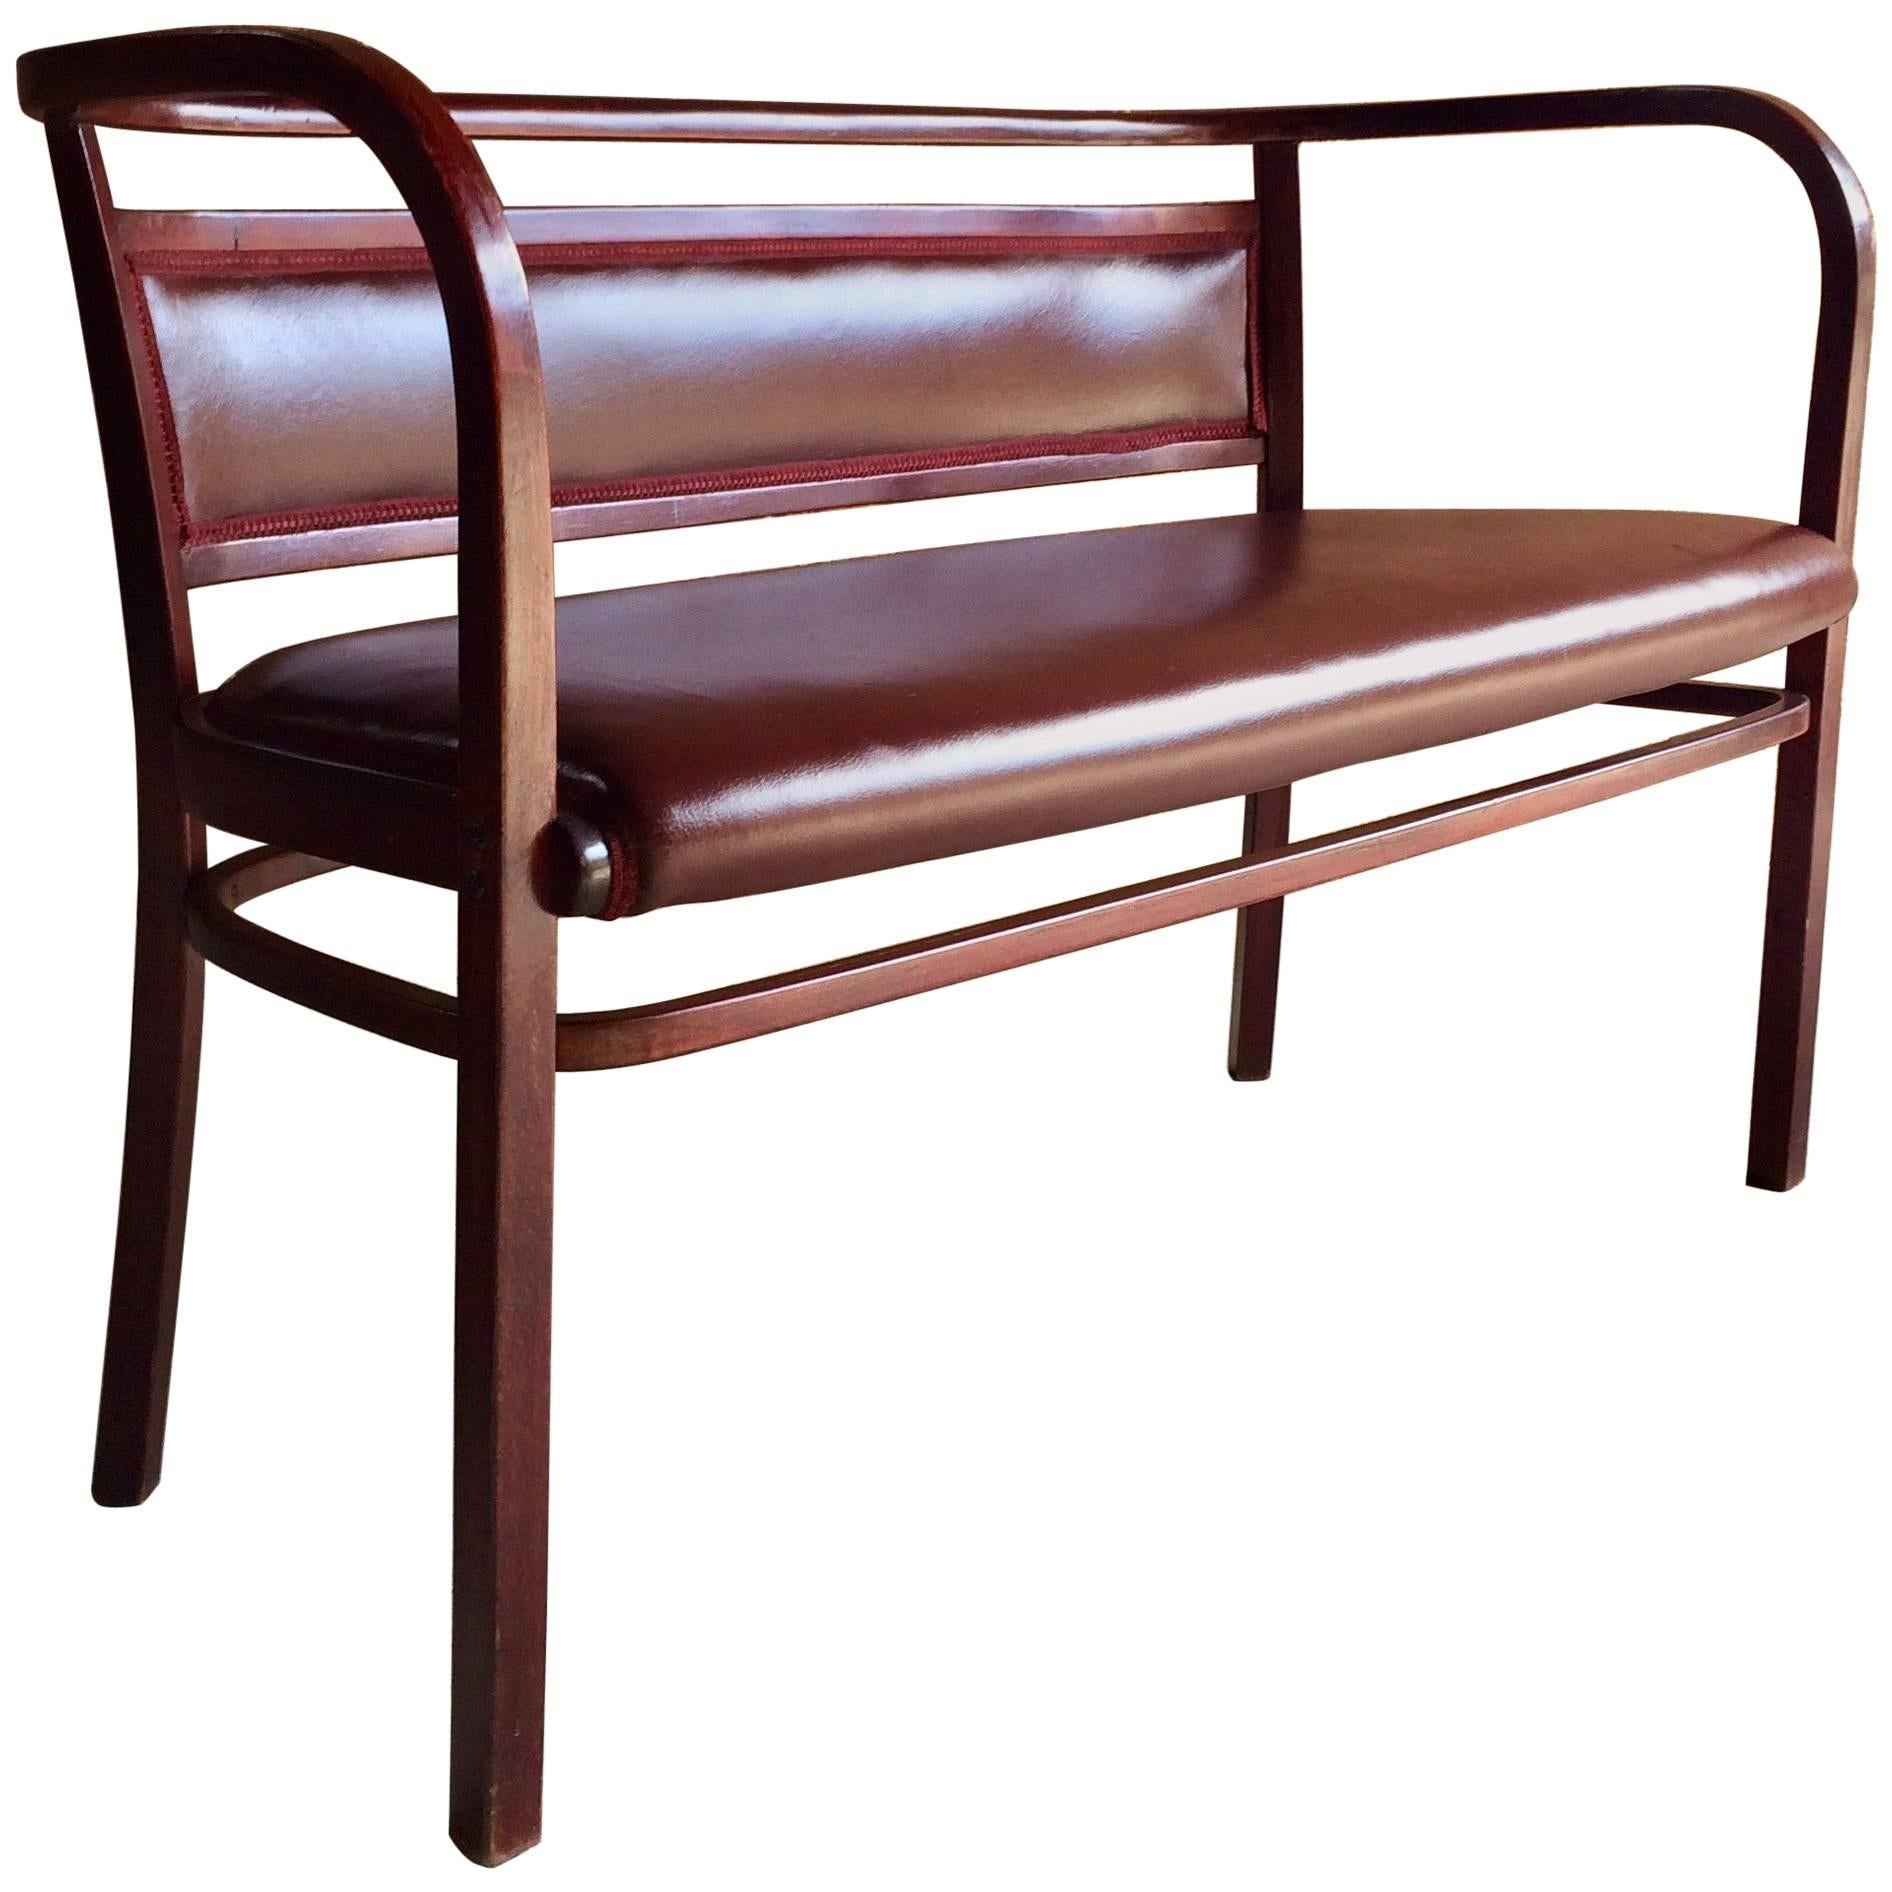 Otto Wagner For Thonet Bentwood Sofa Bench, Circa 1908 Model 3 1